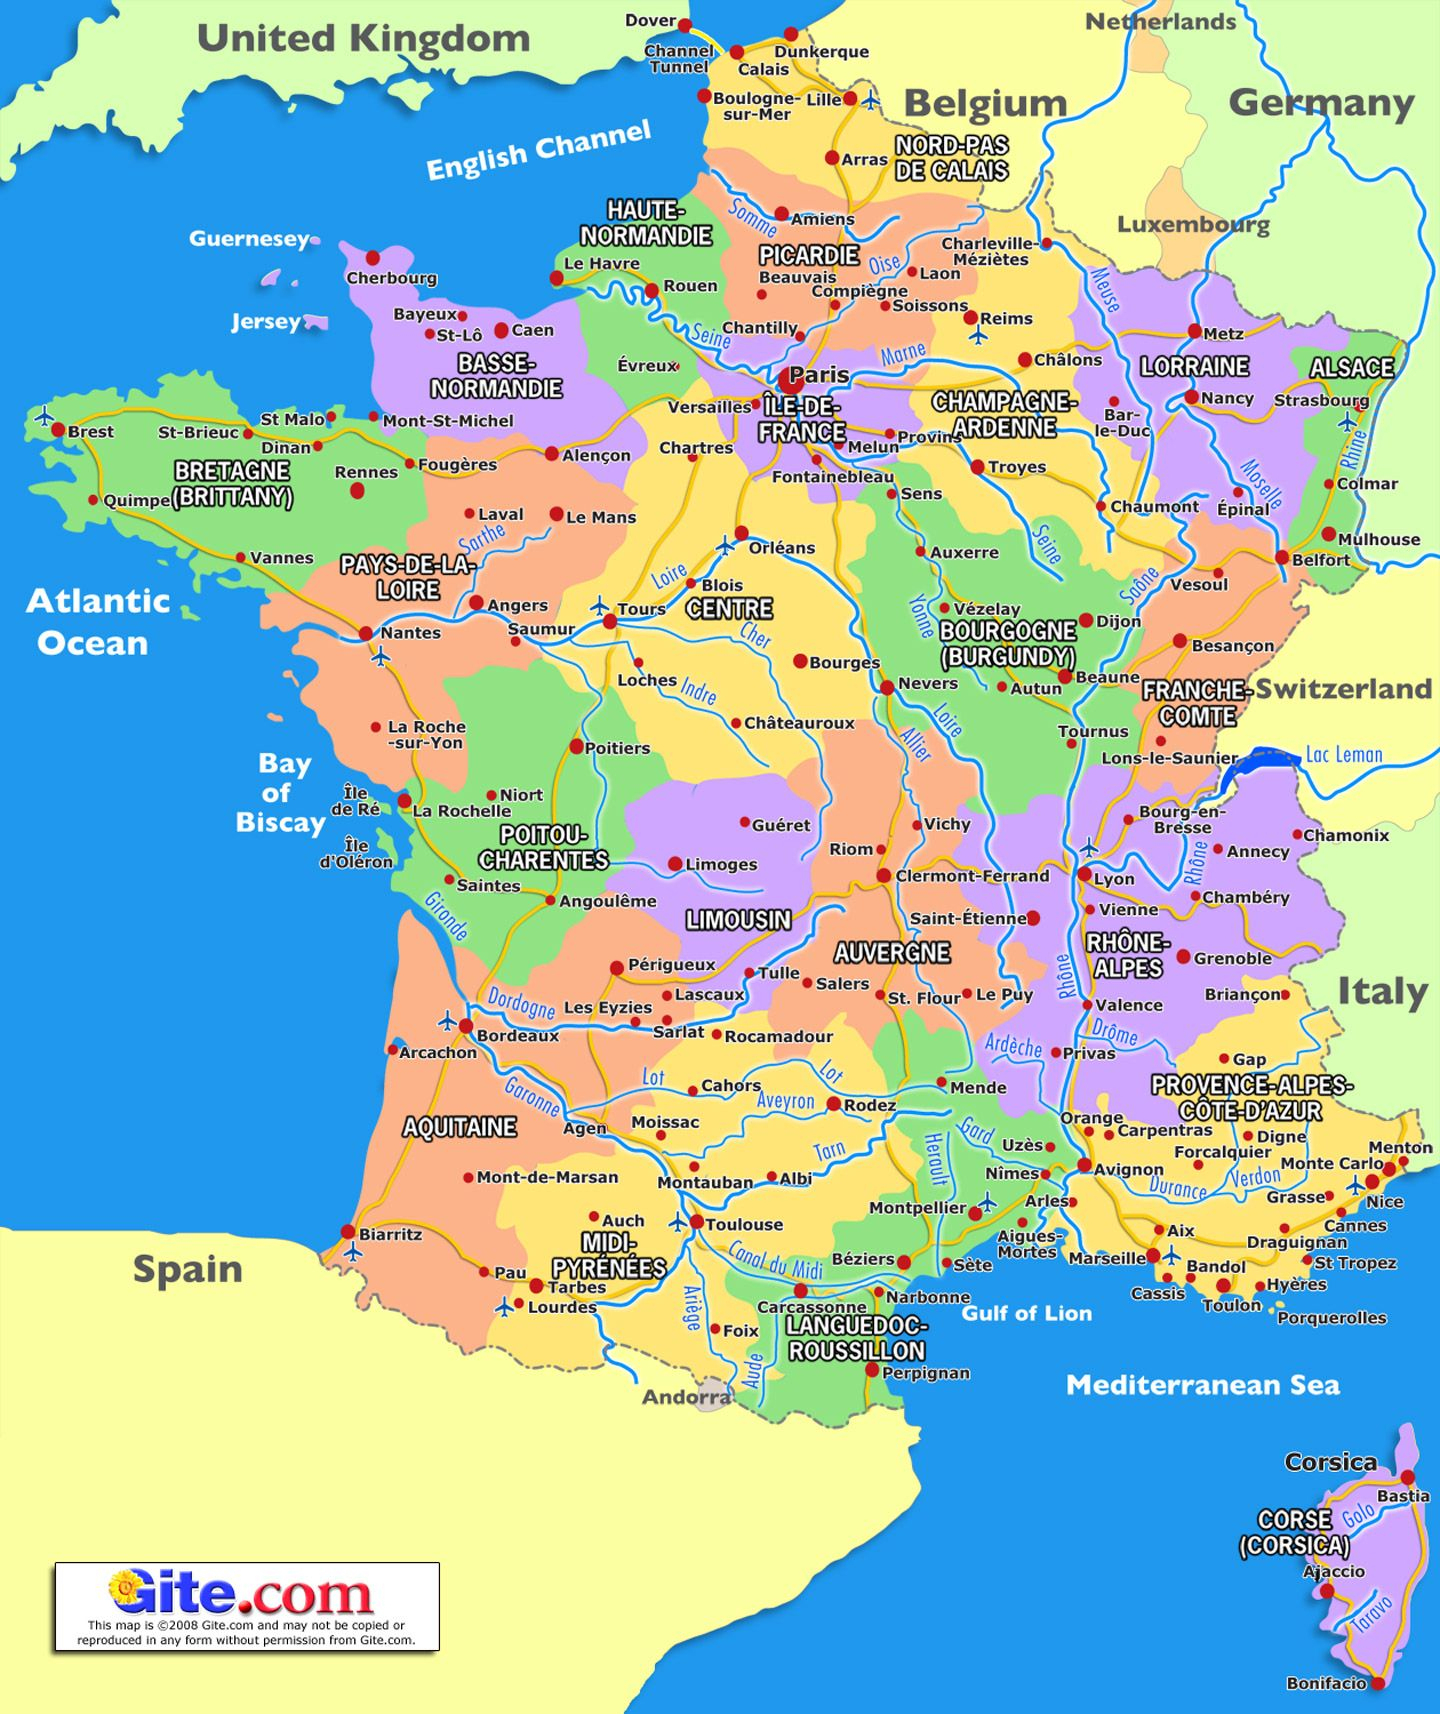 Pin By Miyo Wratten On Francophone Culture | France Map à Region De France 2017